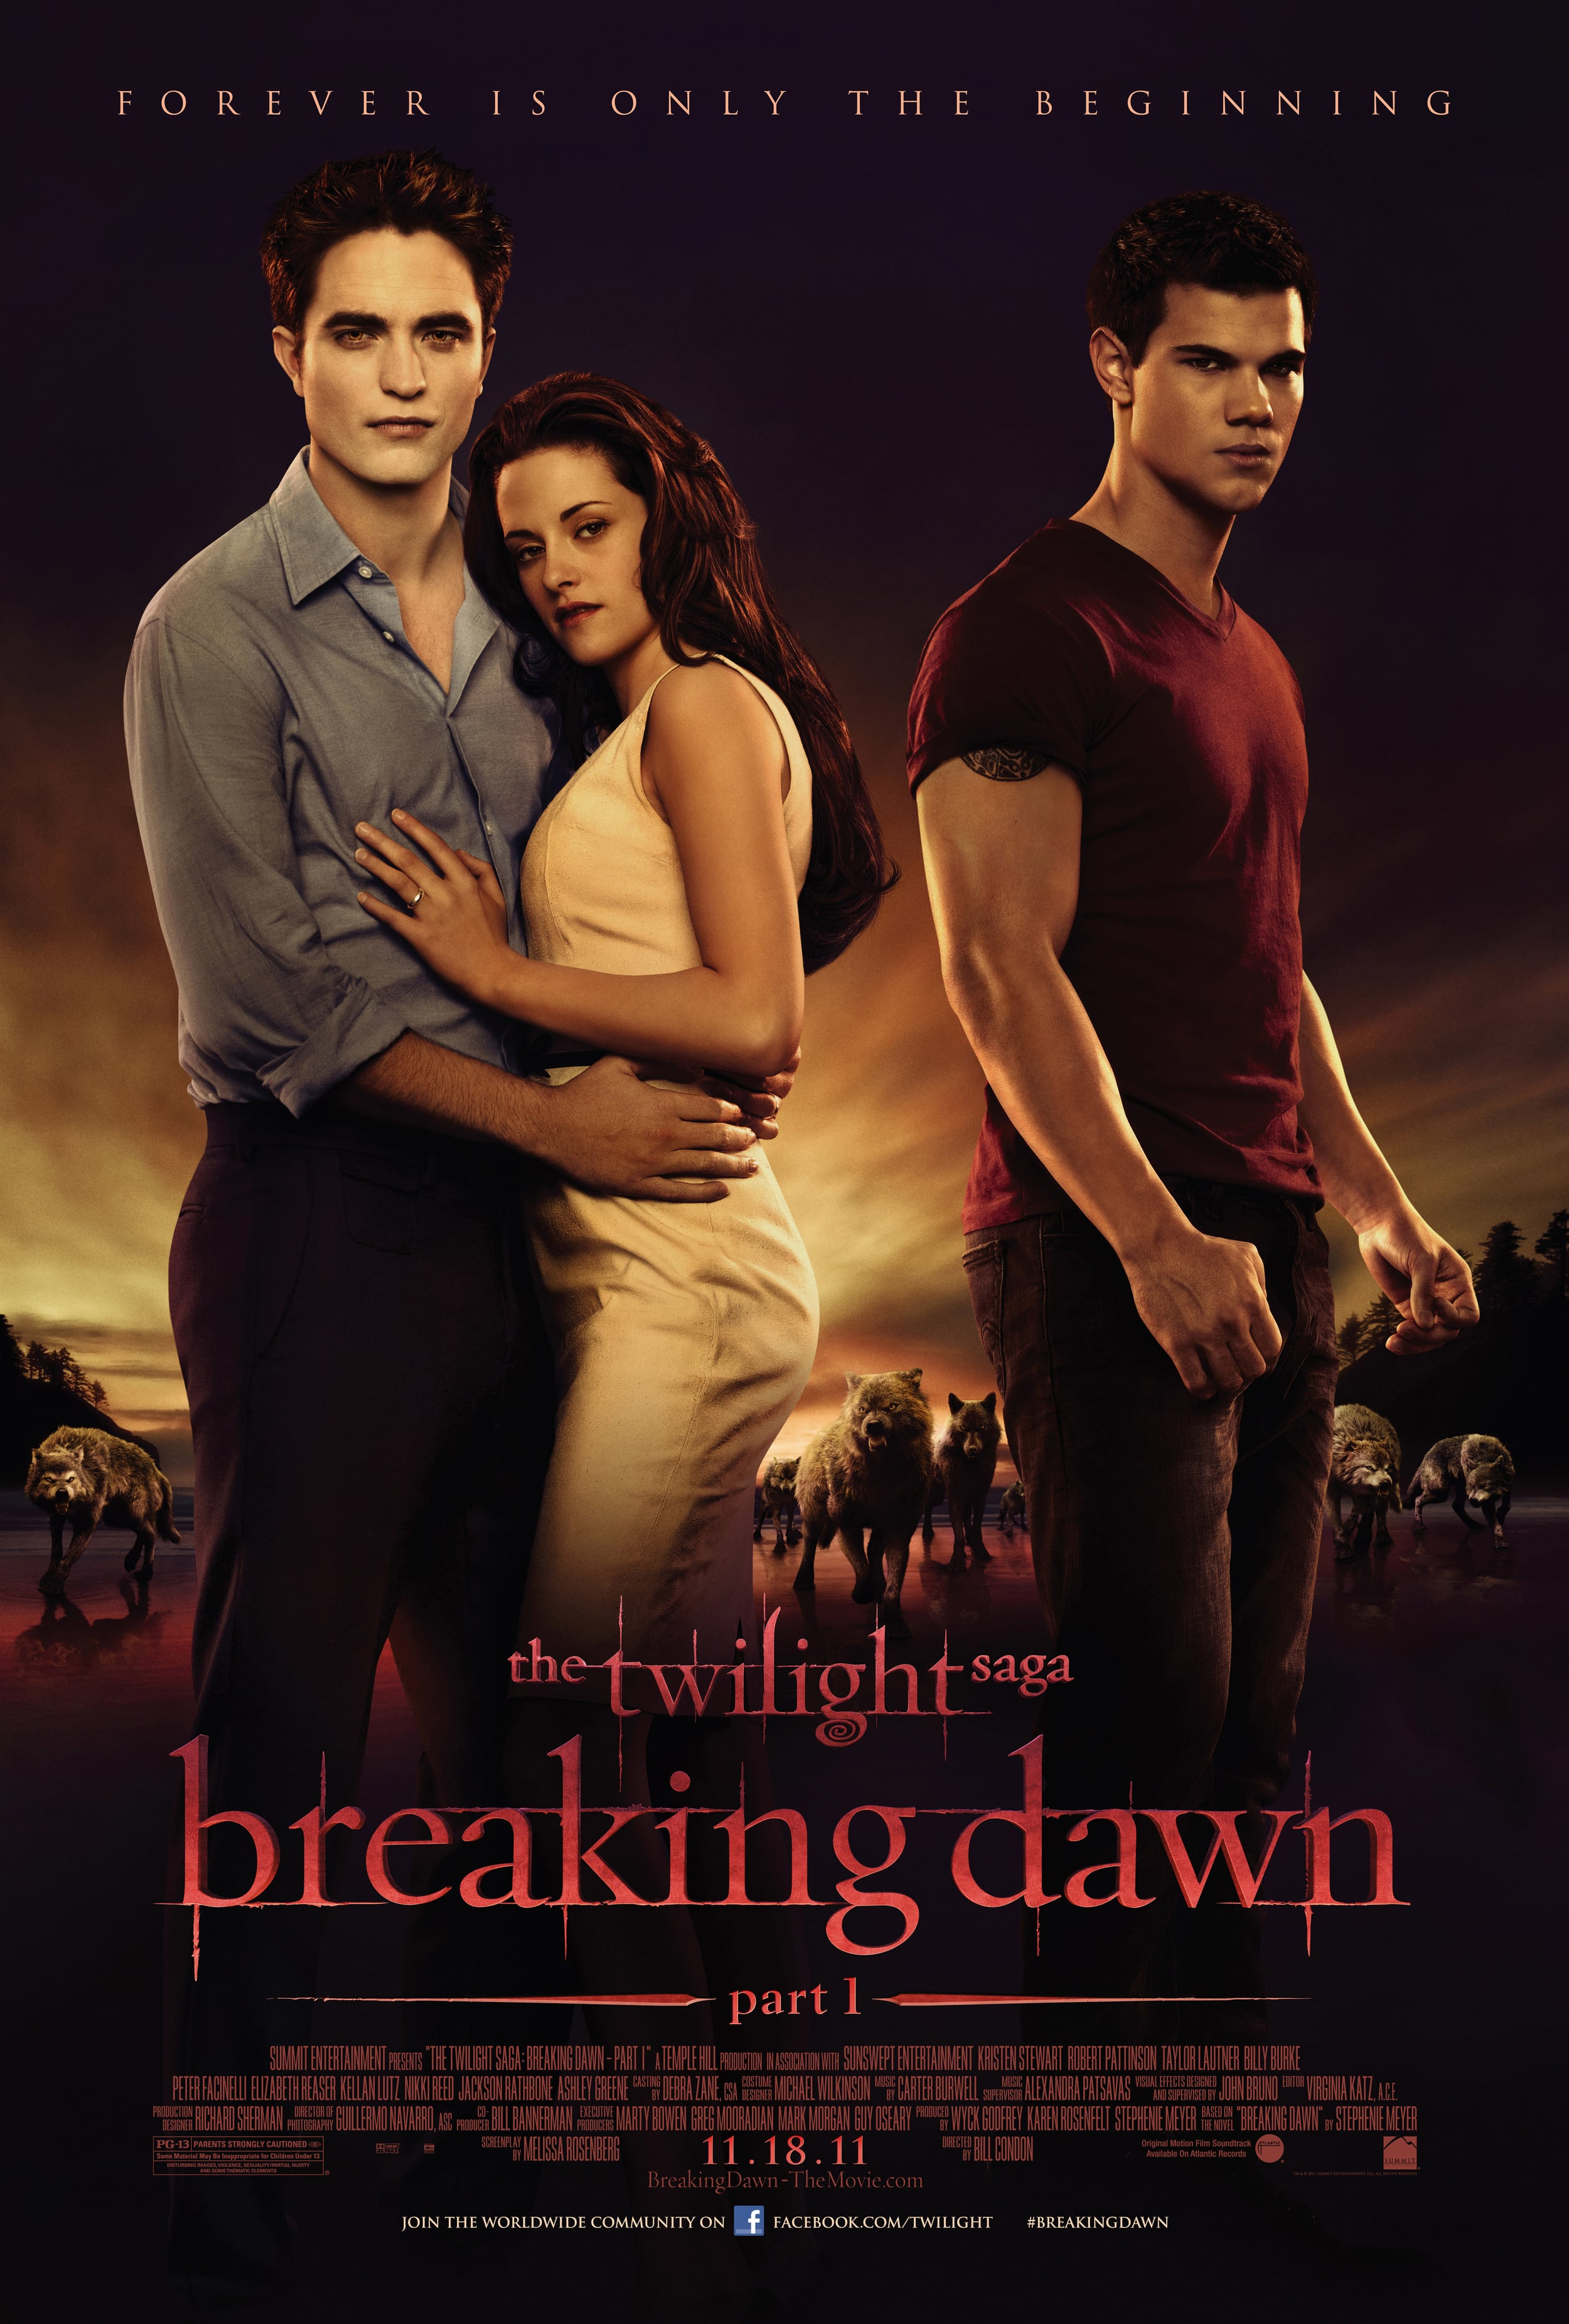 twilight-saga-breaking-dawn-part-1-movie-poster-final.jpg